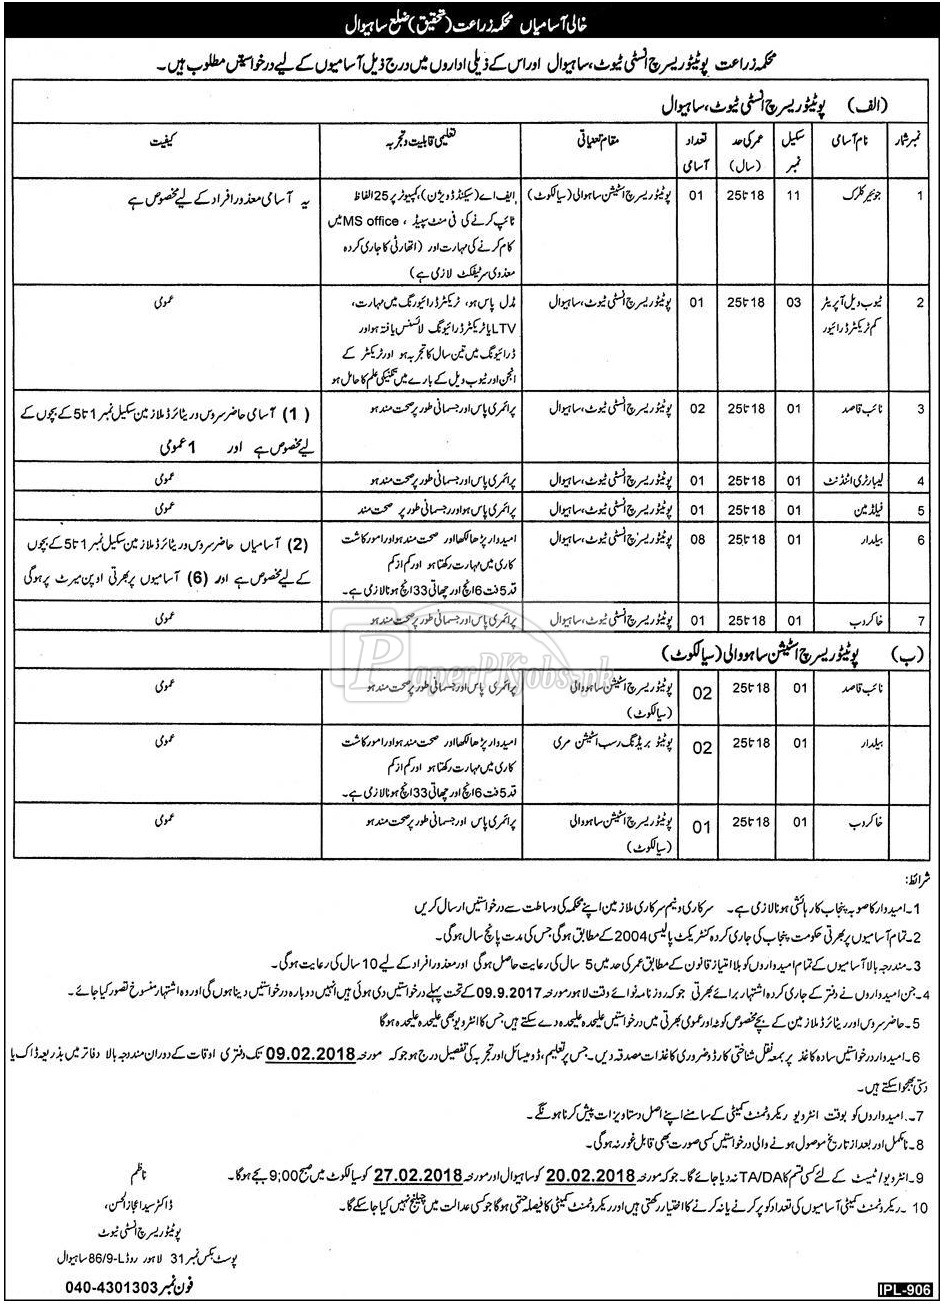 Agriculture Department Punjab Sahiwal Jobs 2018